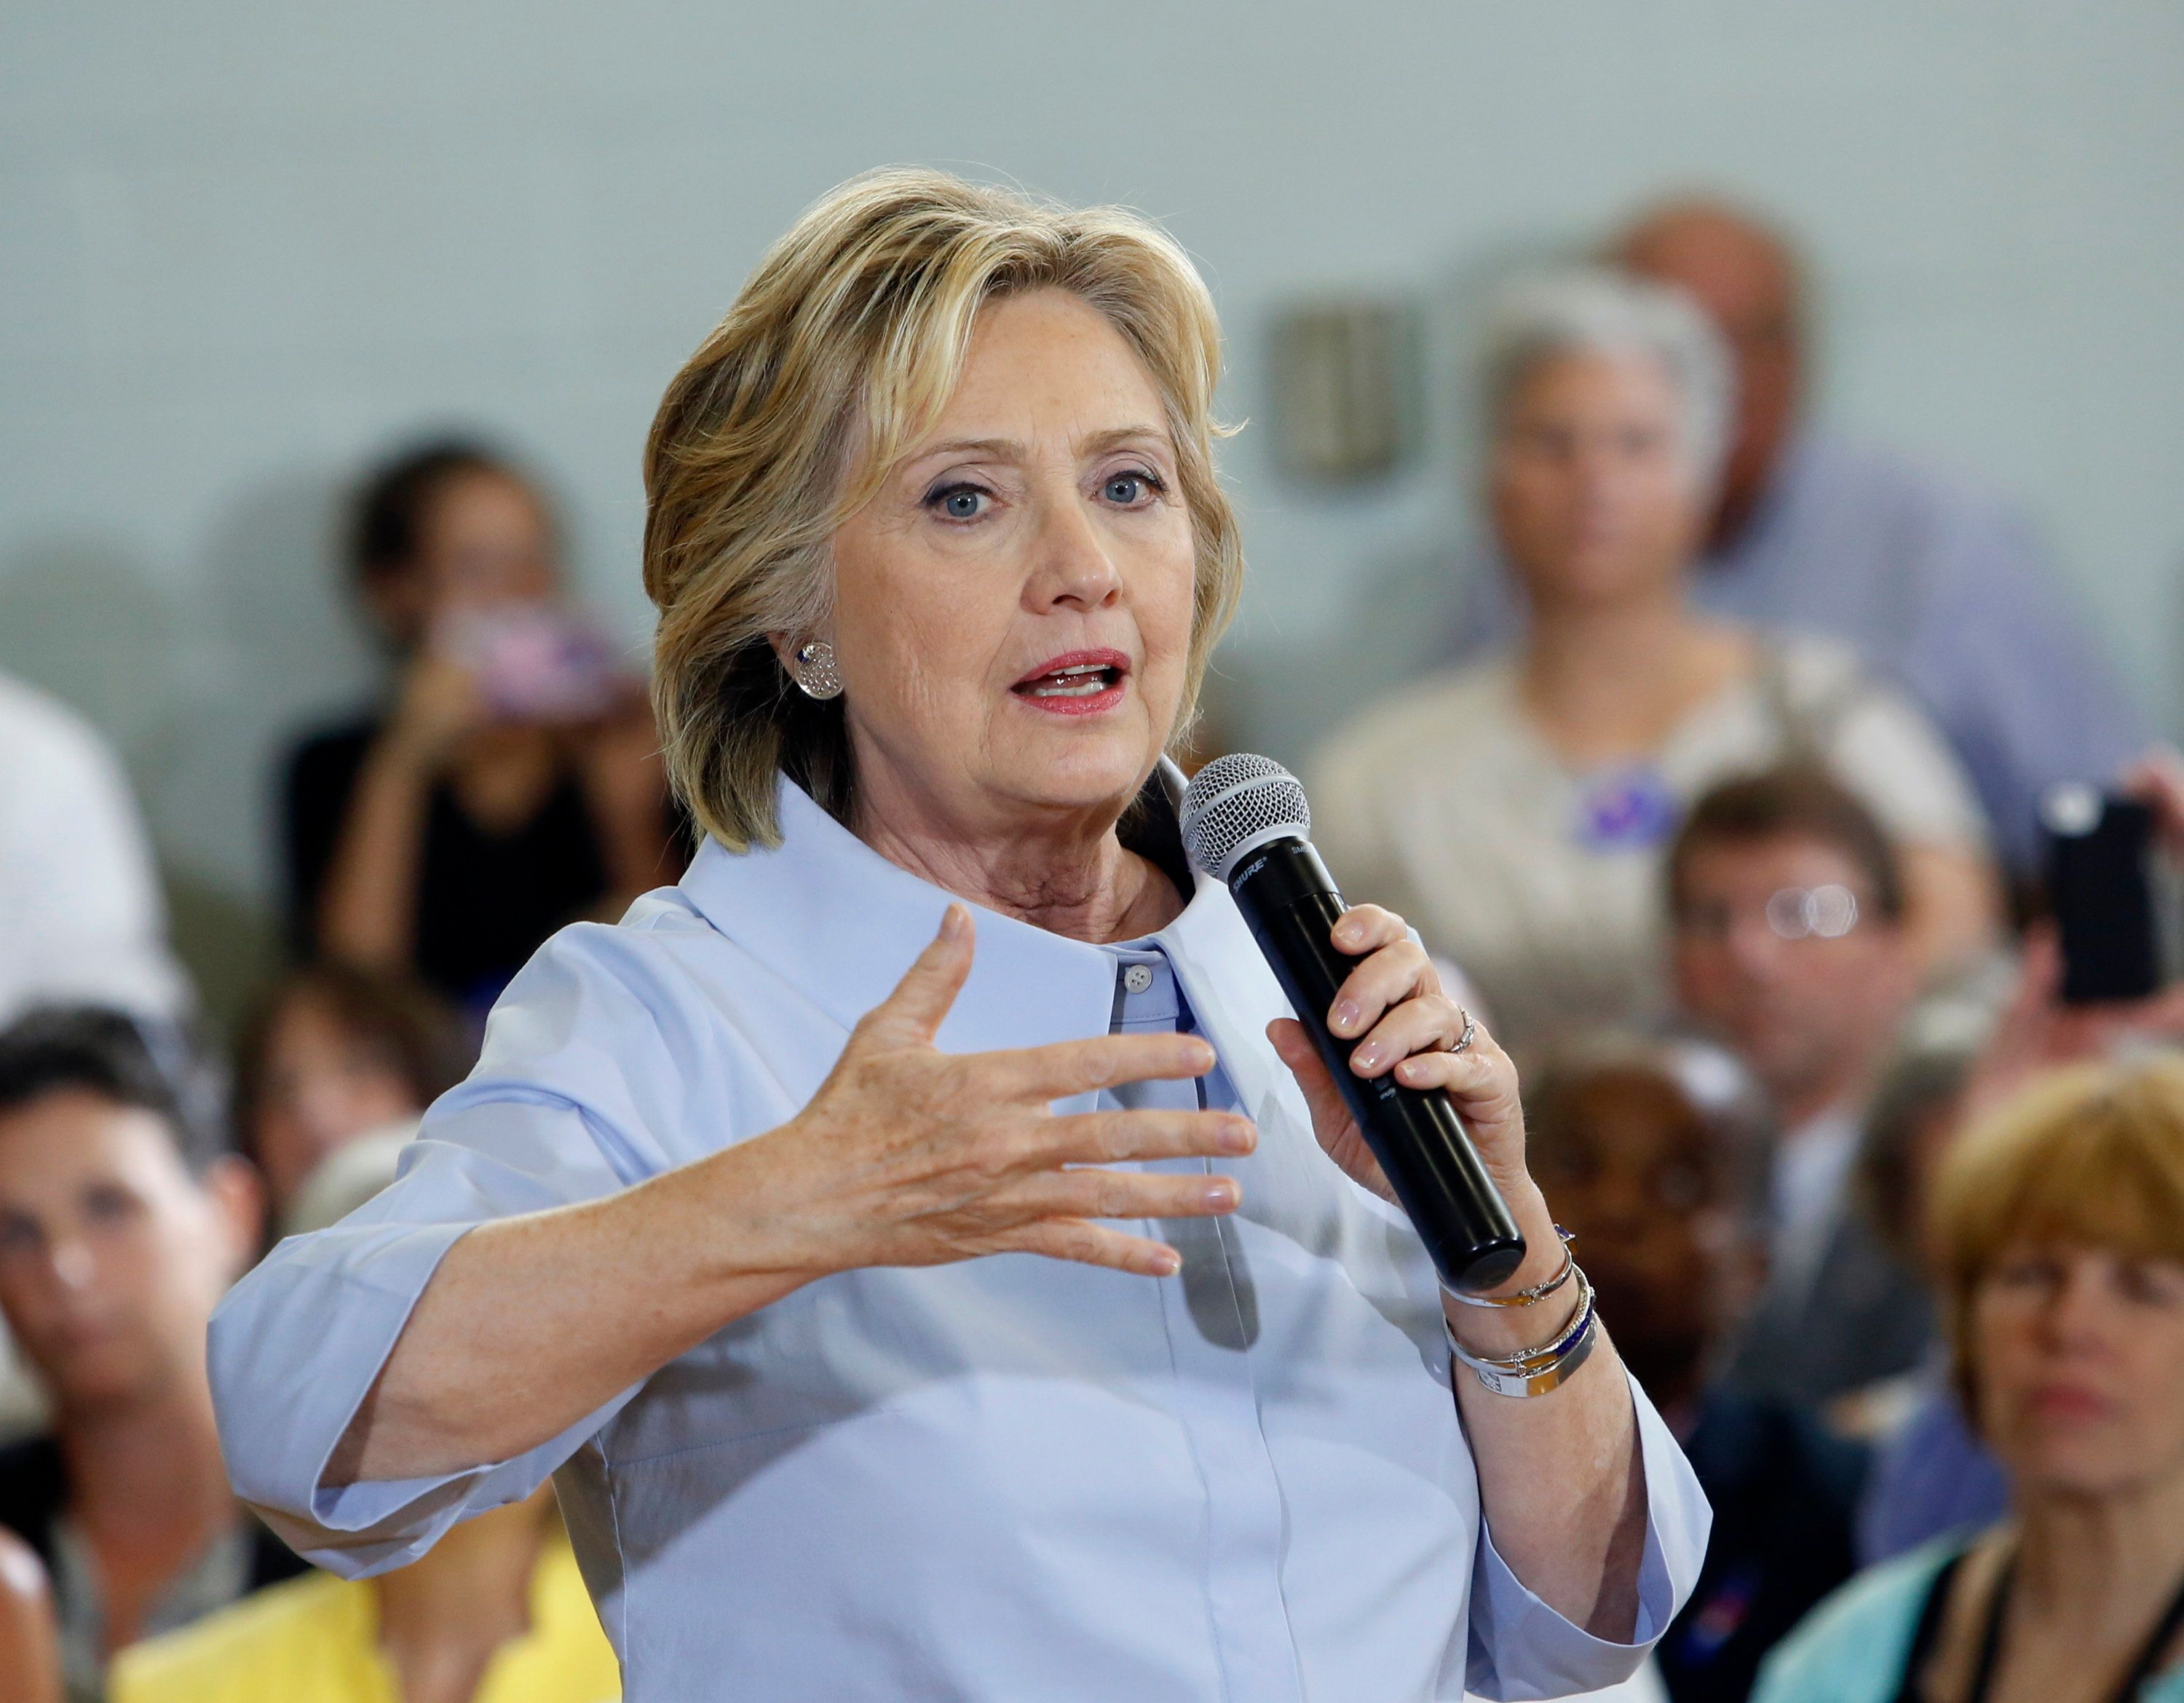 PORTLAND, ME - SEPTEMBER 18: Hillary Clinton brings her Democratic presidential campaign to Maine for the first time, speaking at King Middle School. (Photo by Derek Davis/Portland Press Herald via Getty Images)